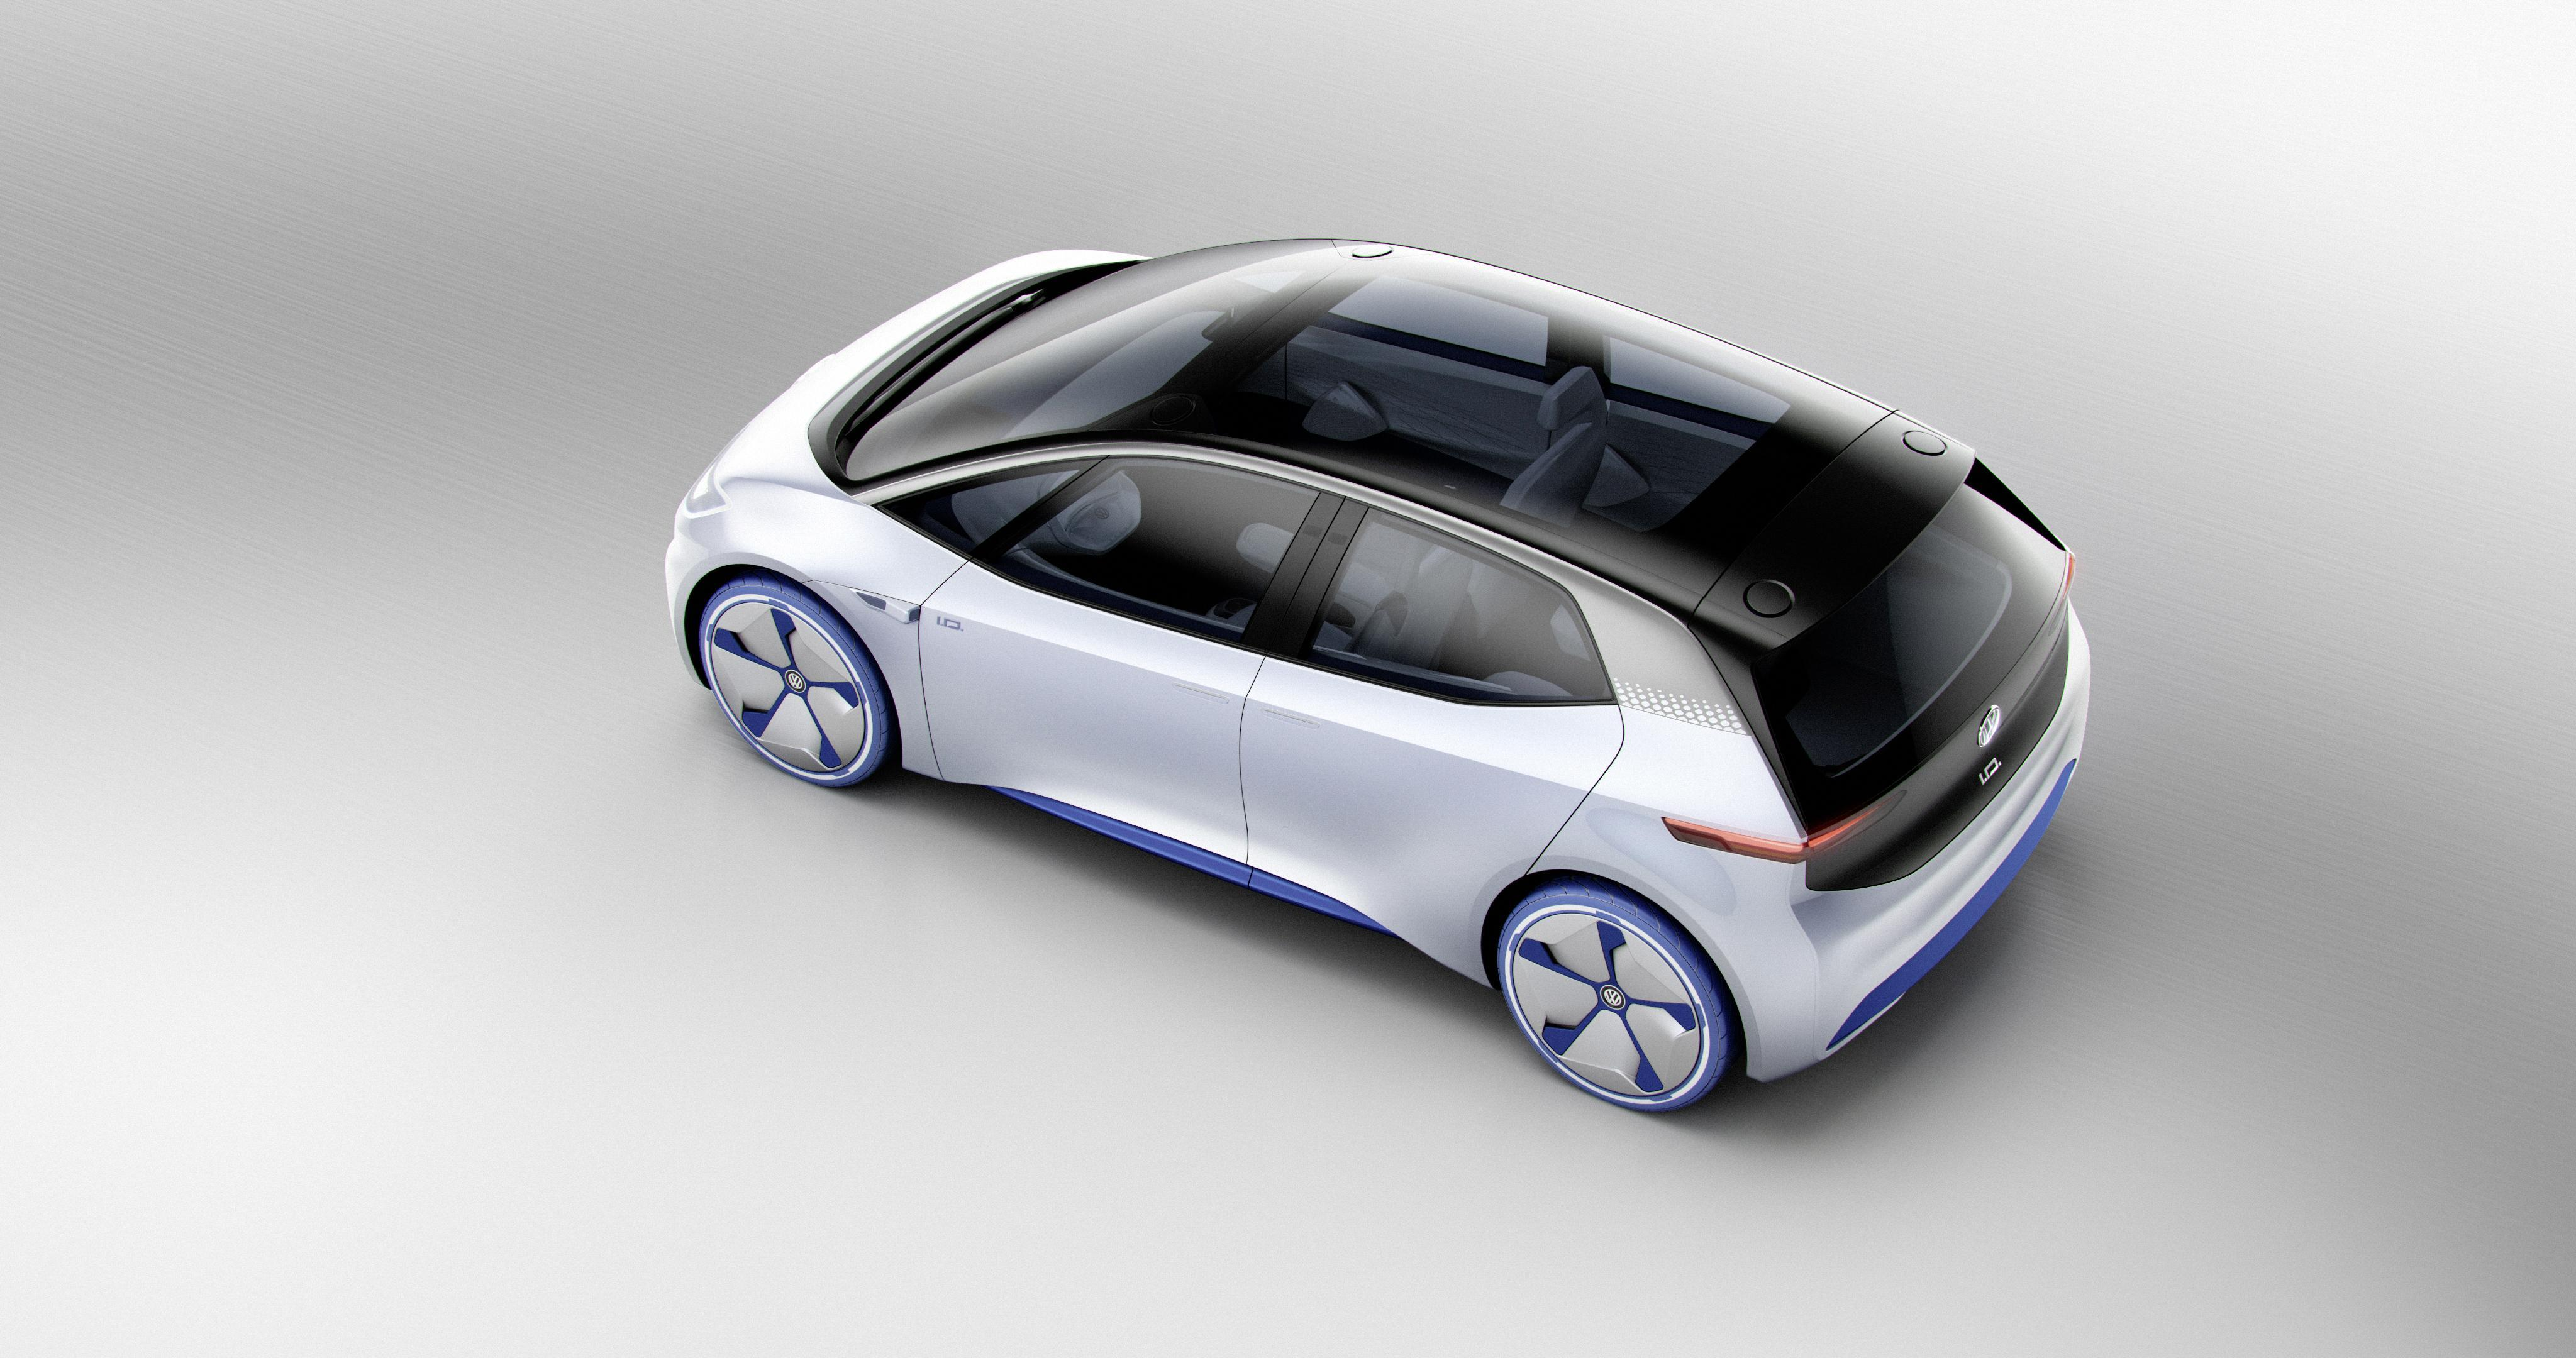 Paris Motor Show: Volkswagen Releases More Pictures of ID Electric